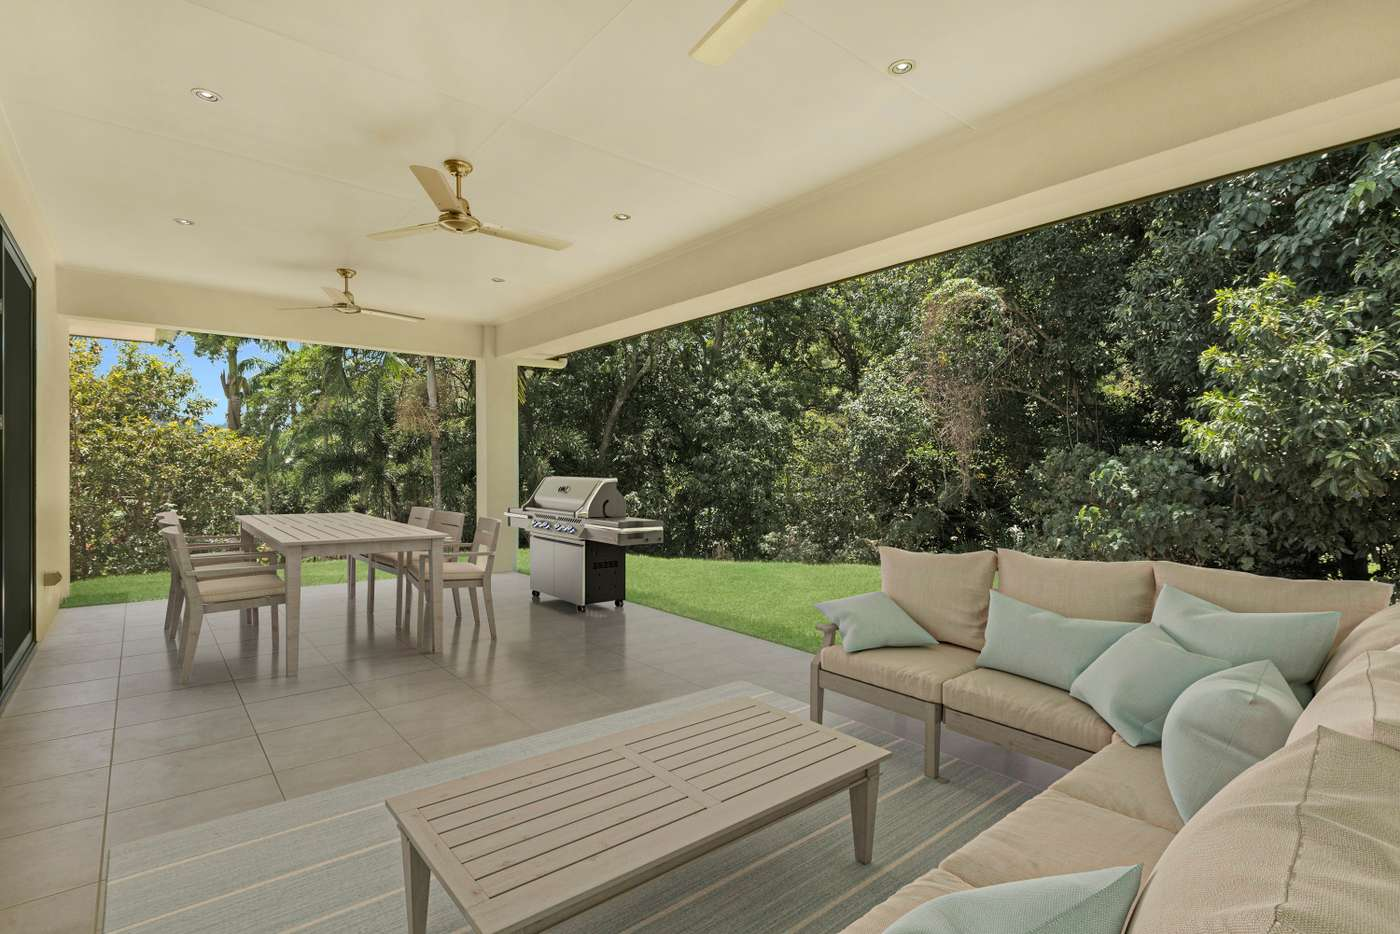 Main view of Homely house listing, 37 Flindersia Street, Redlynch QLD 4870